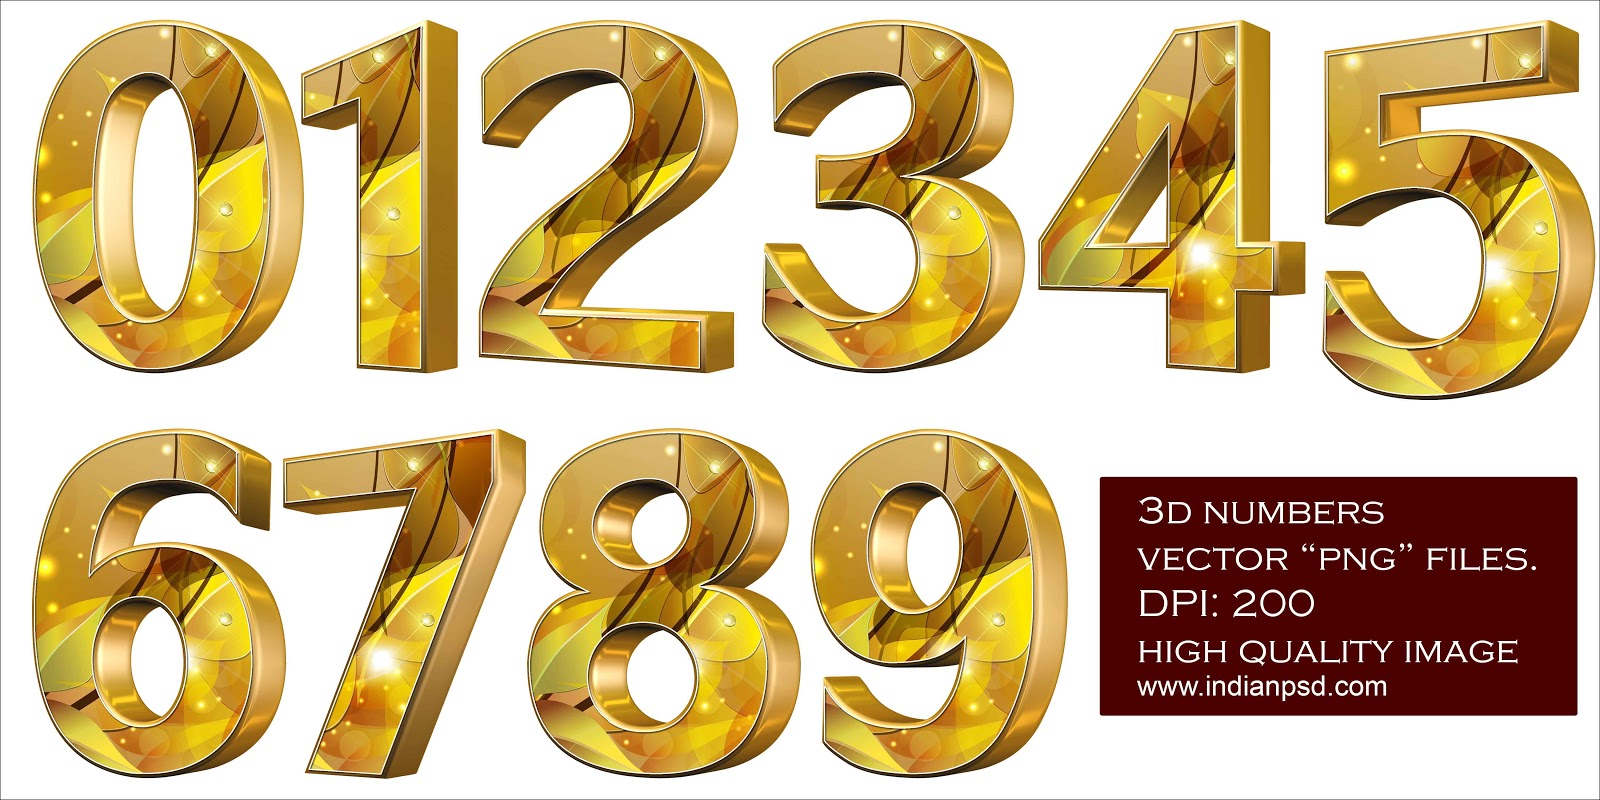 3D NUMBERS PSD FILES FREE DOWNLOAD_ VOL_02 - INDIANPSD.COM